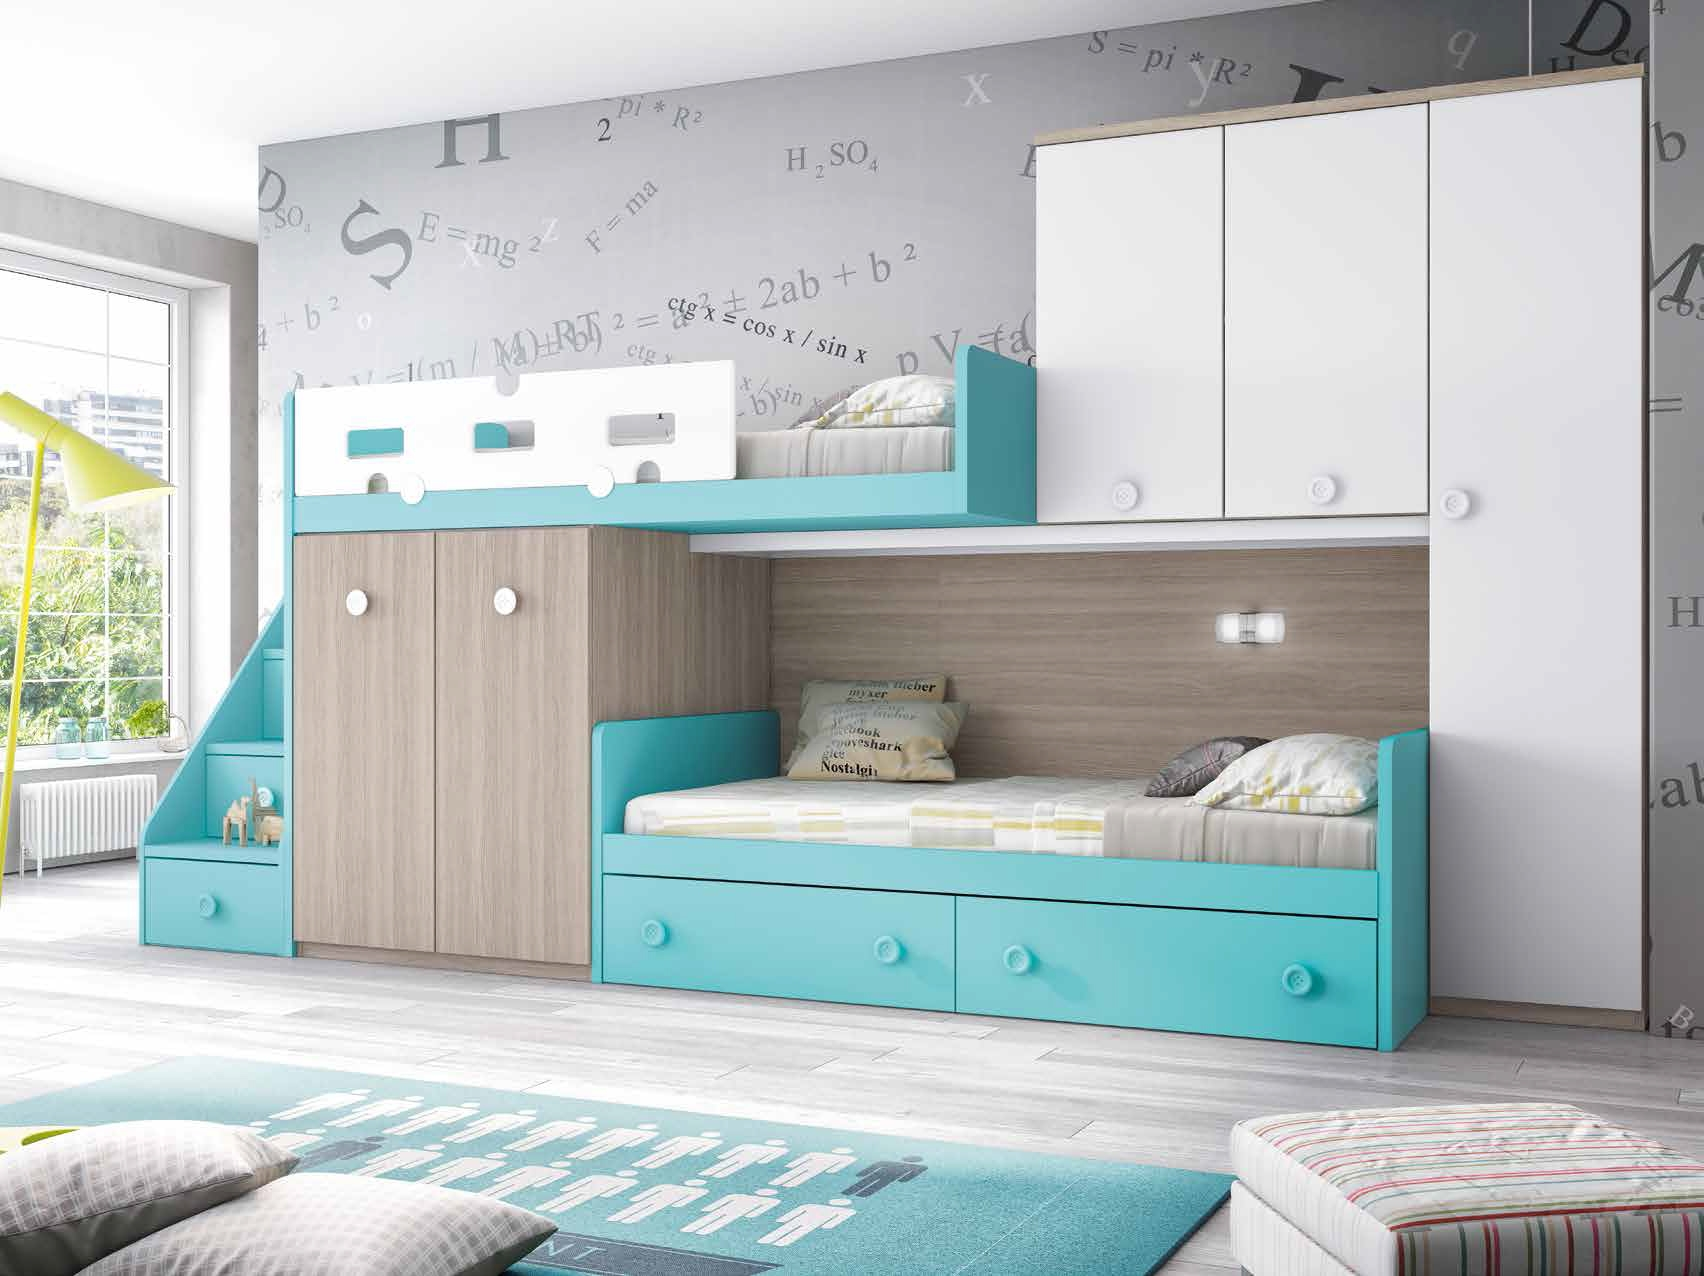 lits superpos s optimiser l espace d 39 une petite chambre. Black Bedroom Furniture Sets. Home Design Ideas